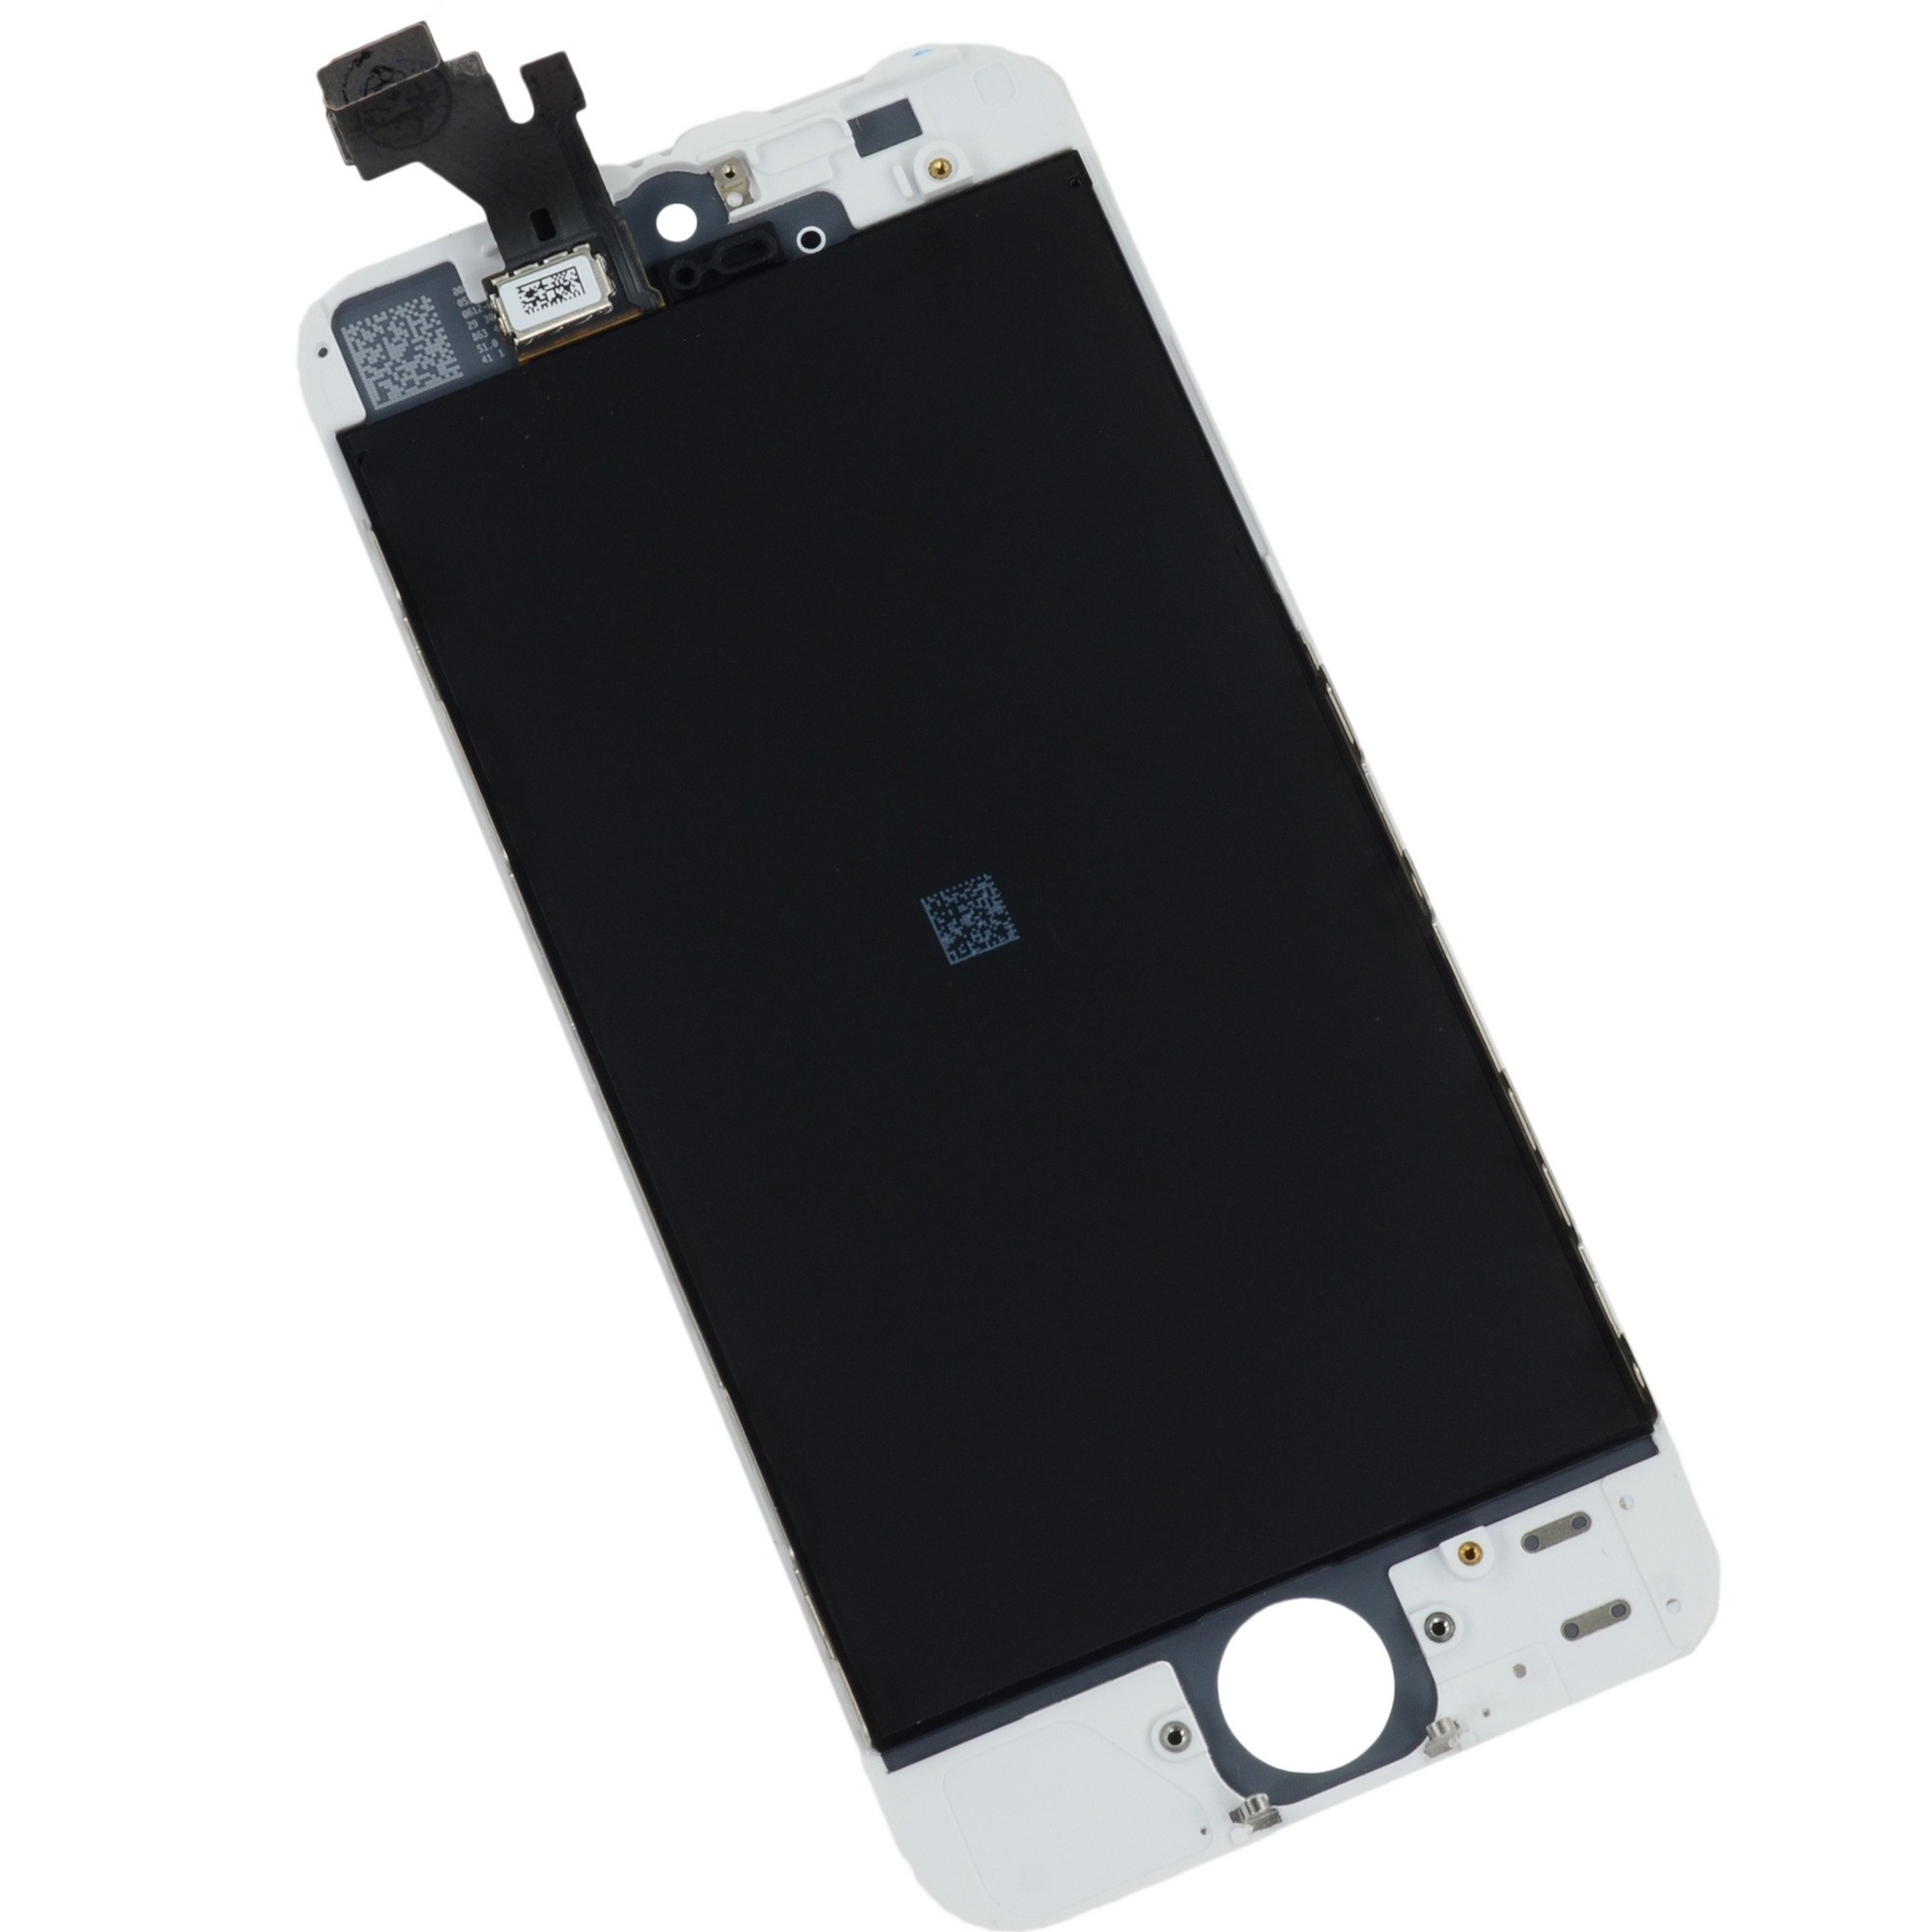 iPhone 5 LCD Screen and Digitizer - White, IF118-000-2